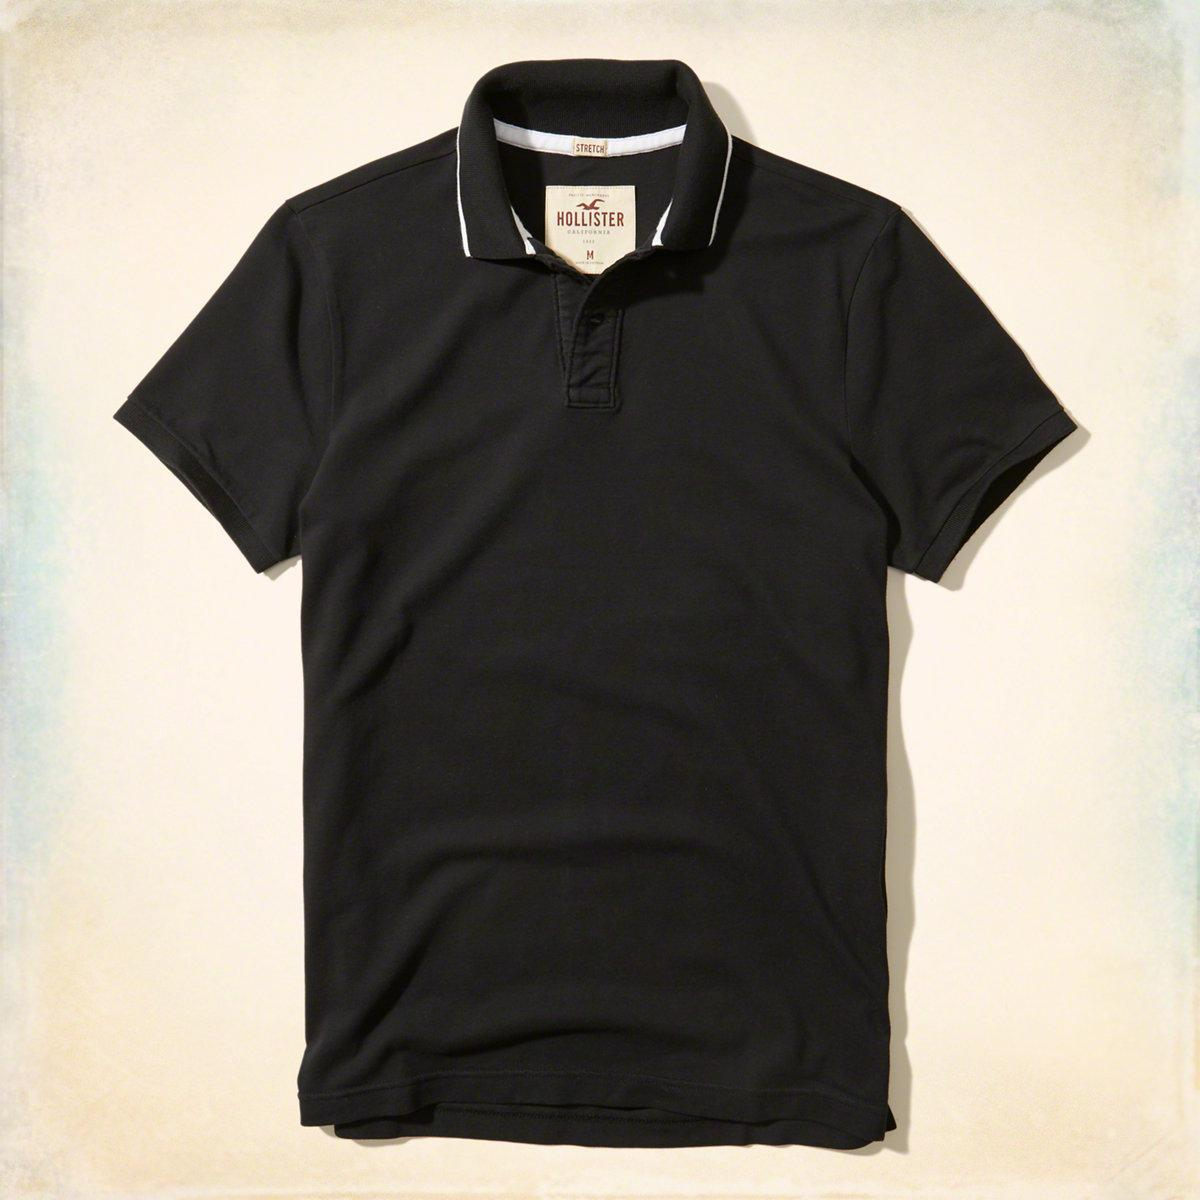 hollister black single men Extended sizes, limited edition designs and more for men and women from the  biggest a&f outfitter in the worldshop here for enduring style that's always.